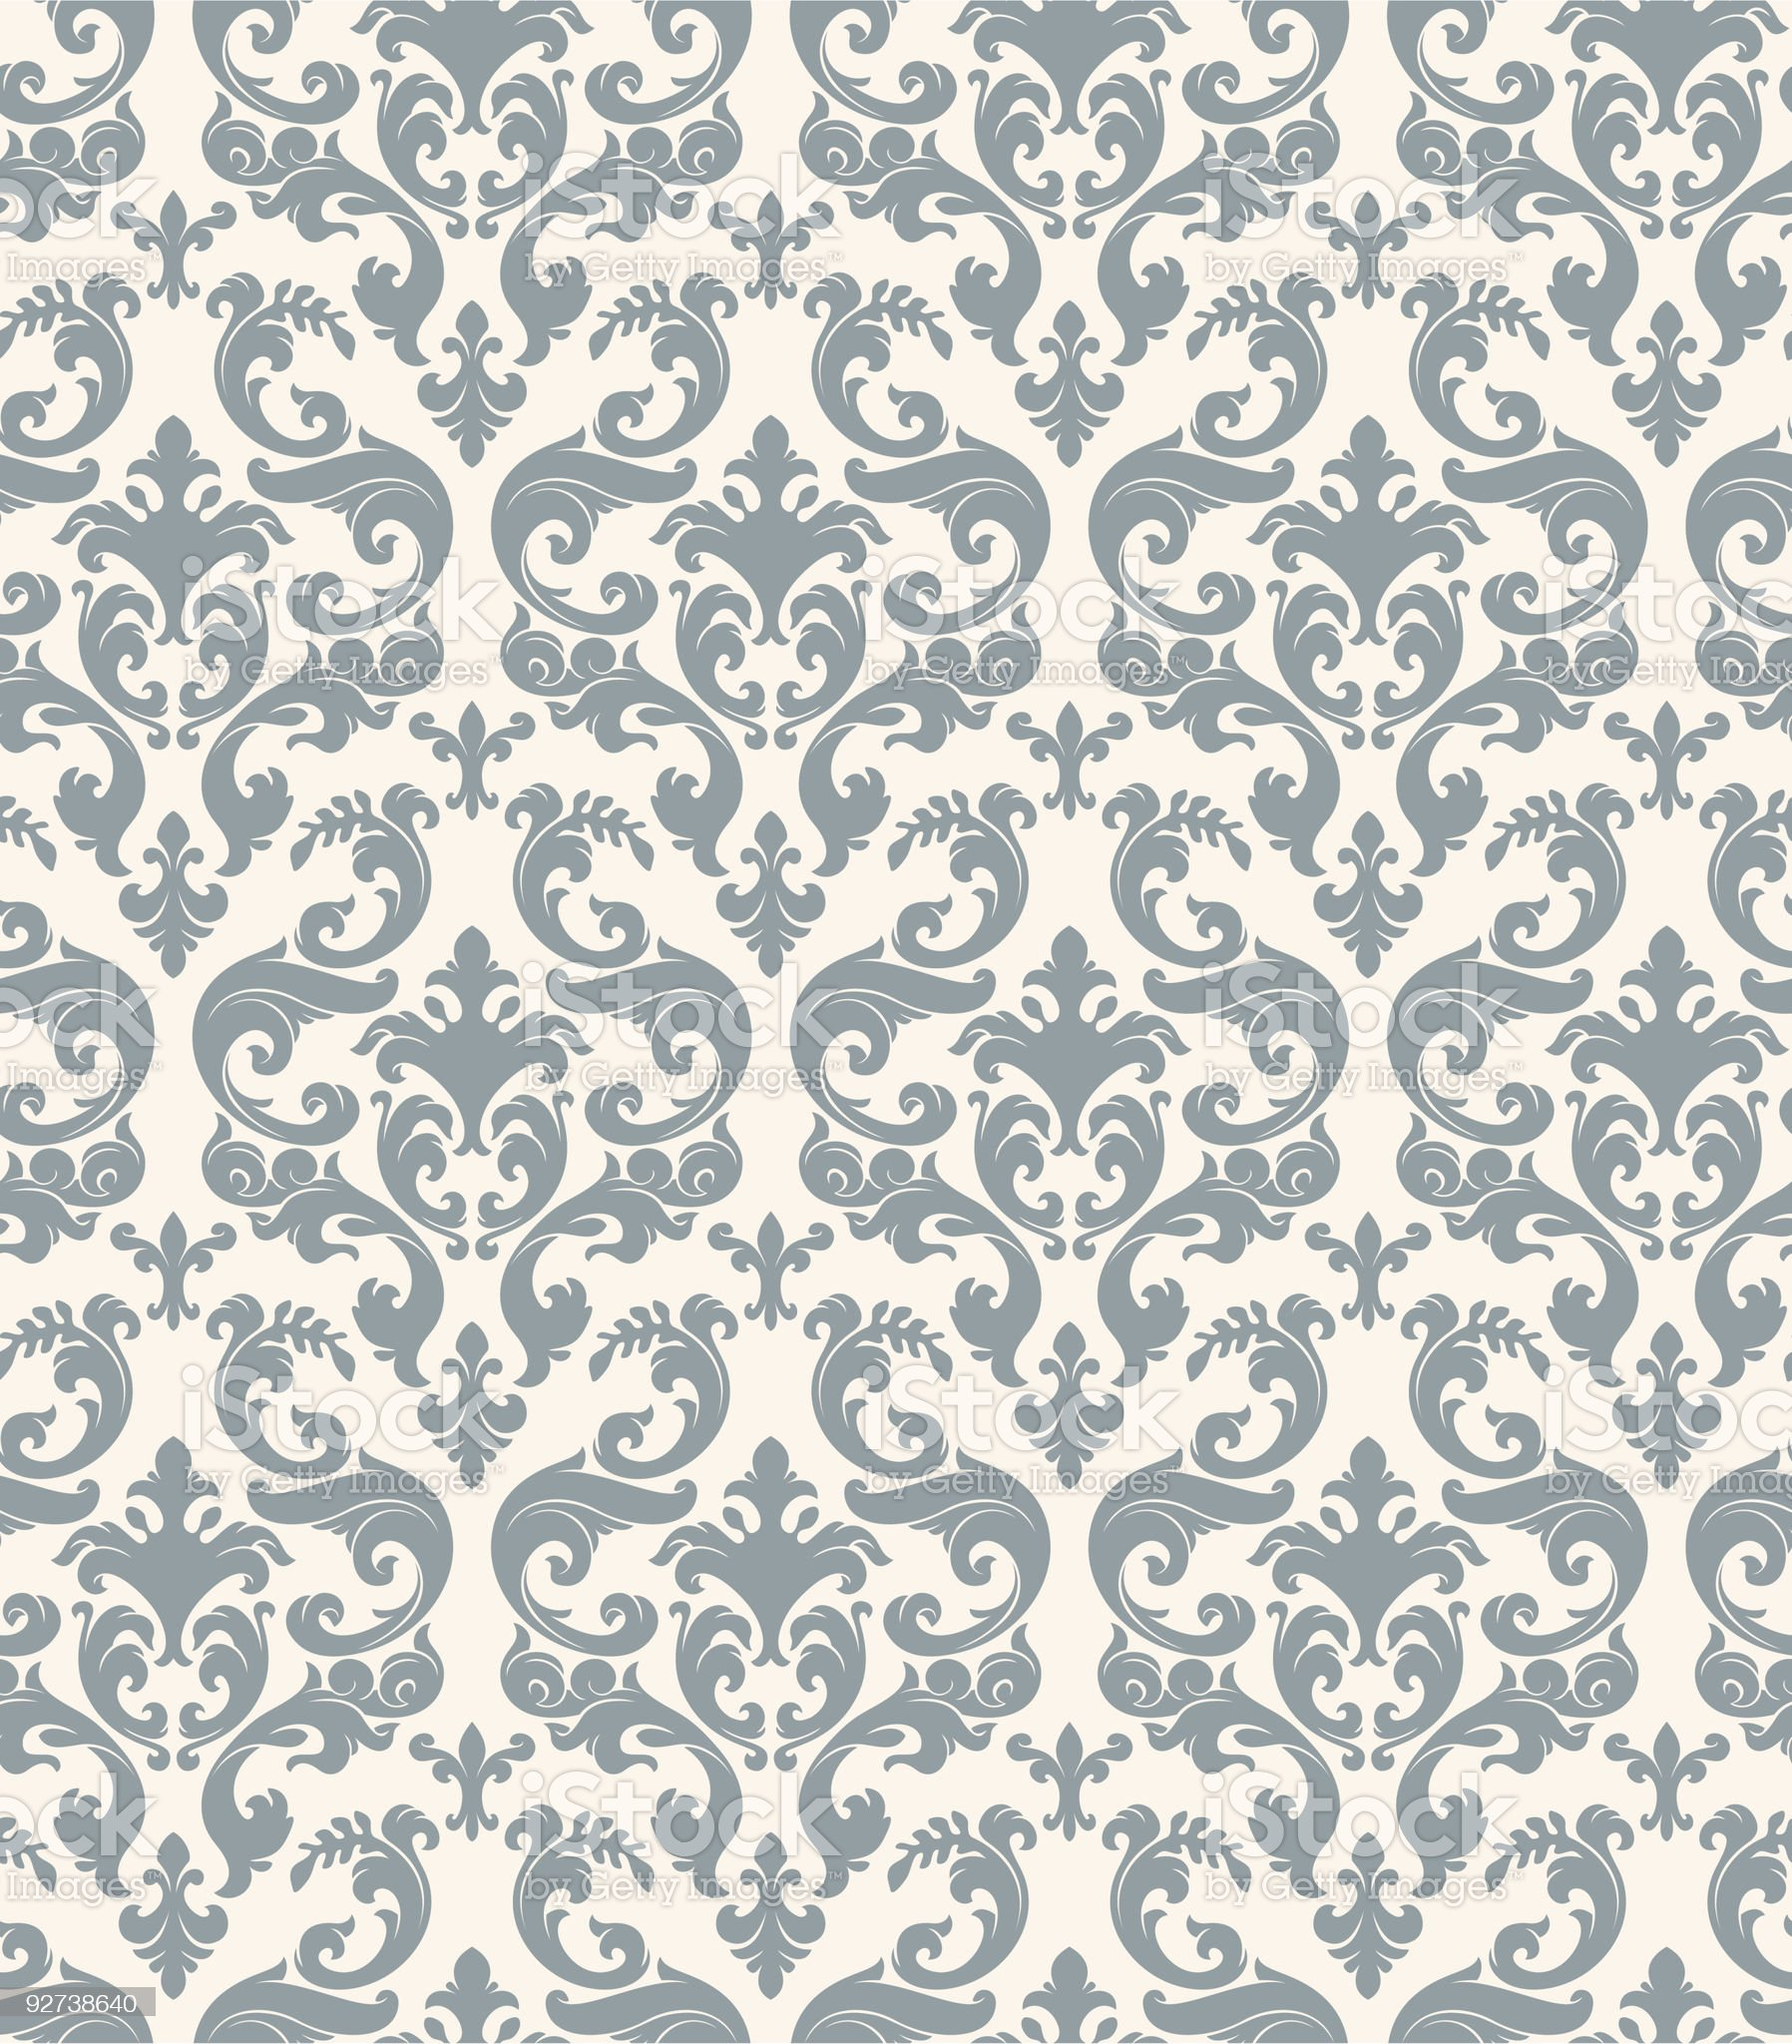 Gray and cream floral wallpaper royalty-free stock vector art